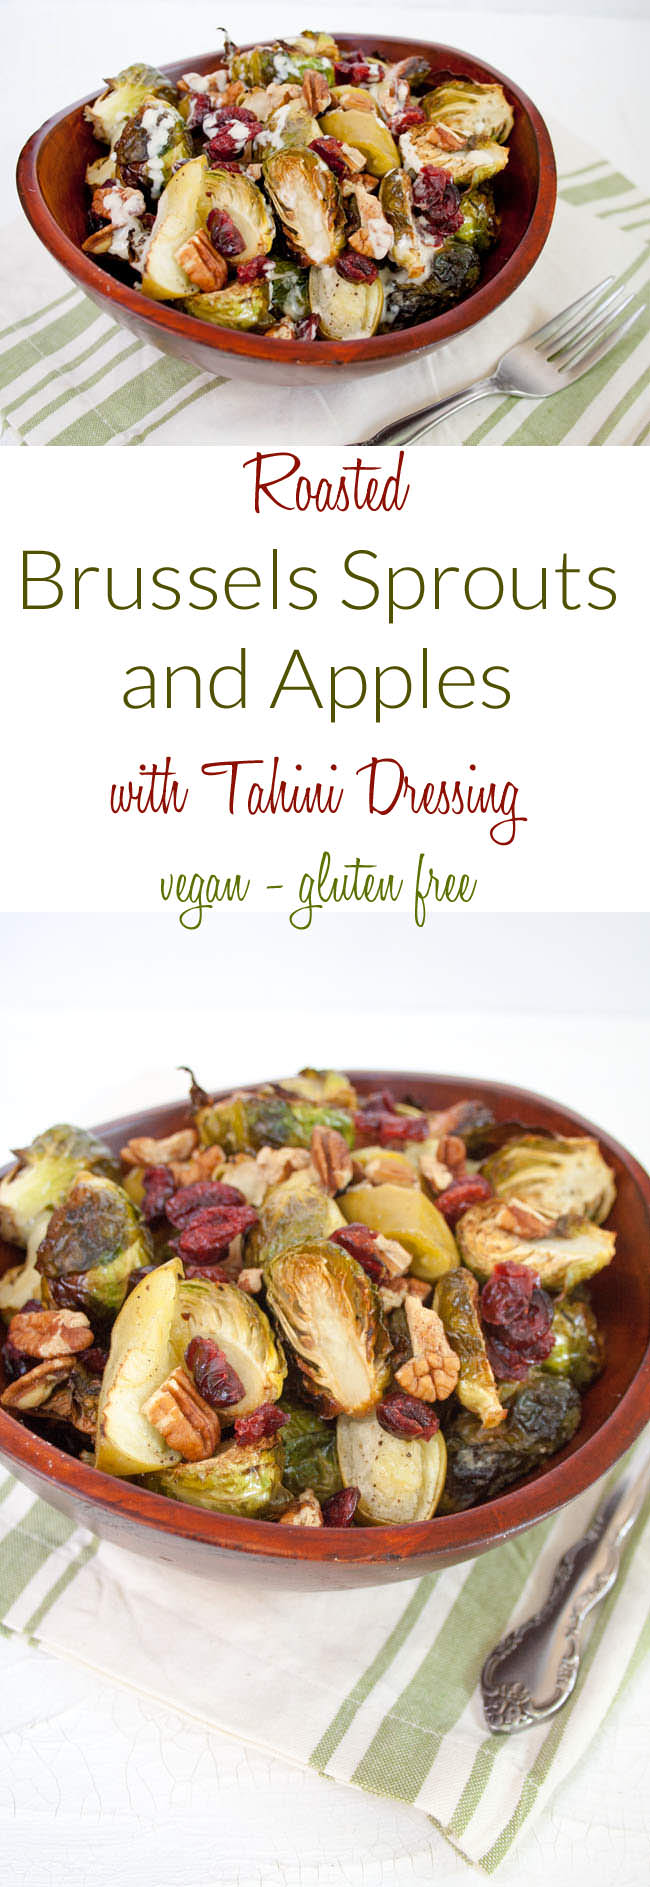 Roasted Brussels Sprouts and Apples with Tahini Dressing collage photo